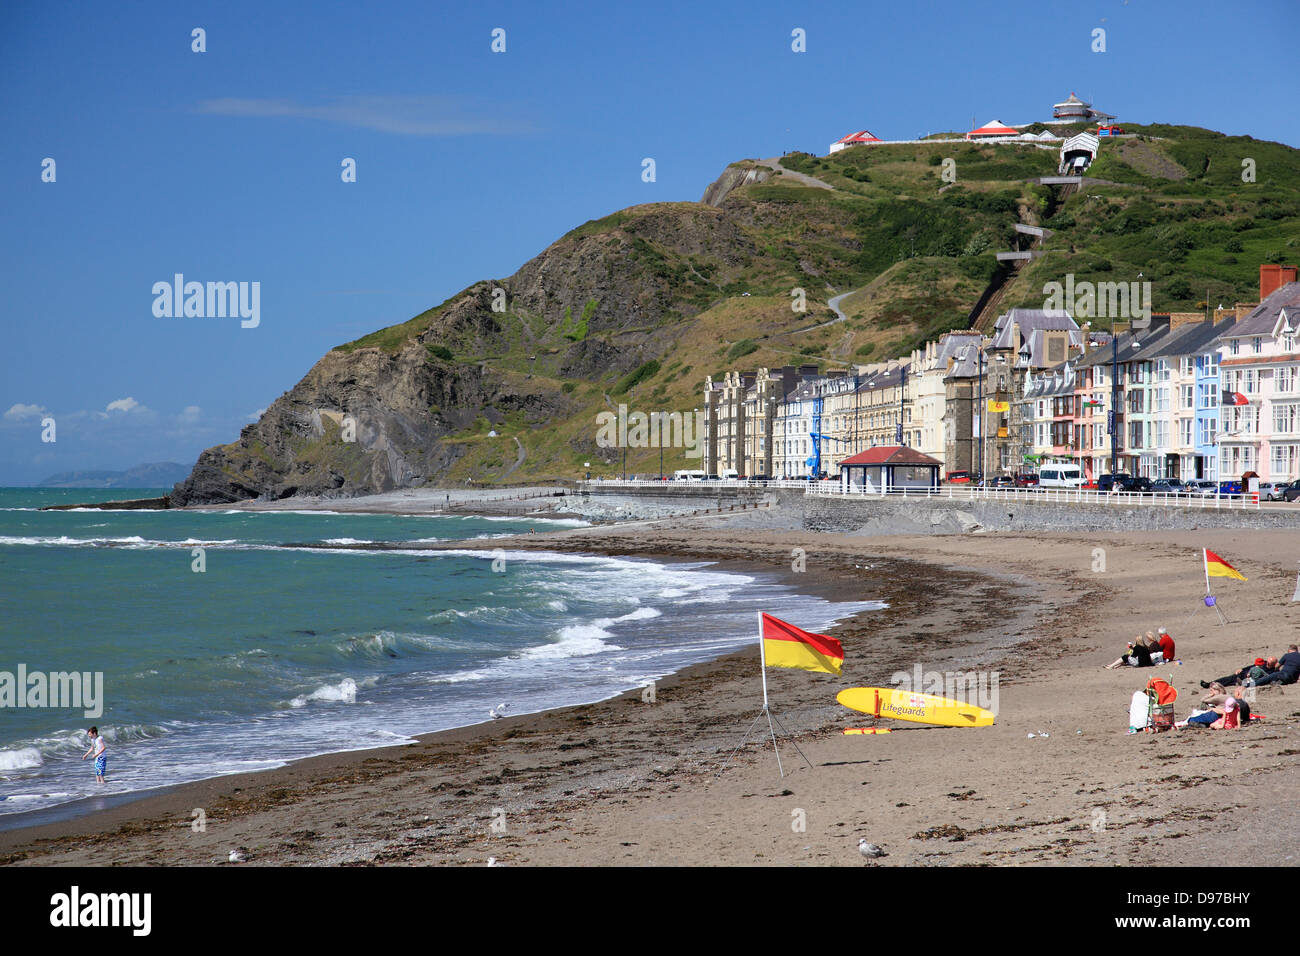 The Beach and promenade at Aberystwyth with RNLI flags to show a safe swimming area and a lifeguard on duty - Stock Image